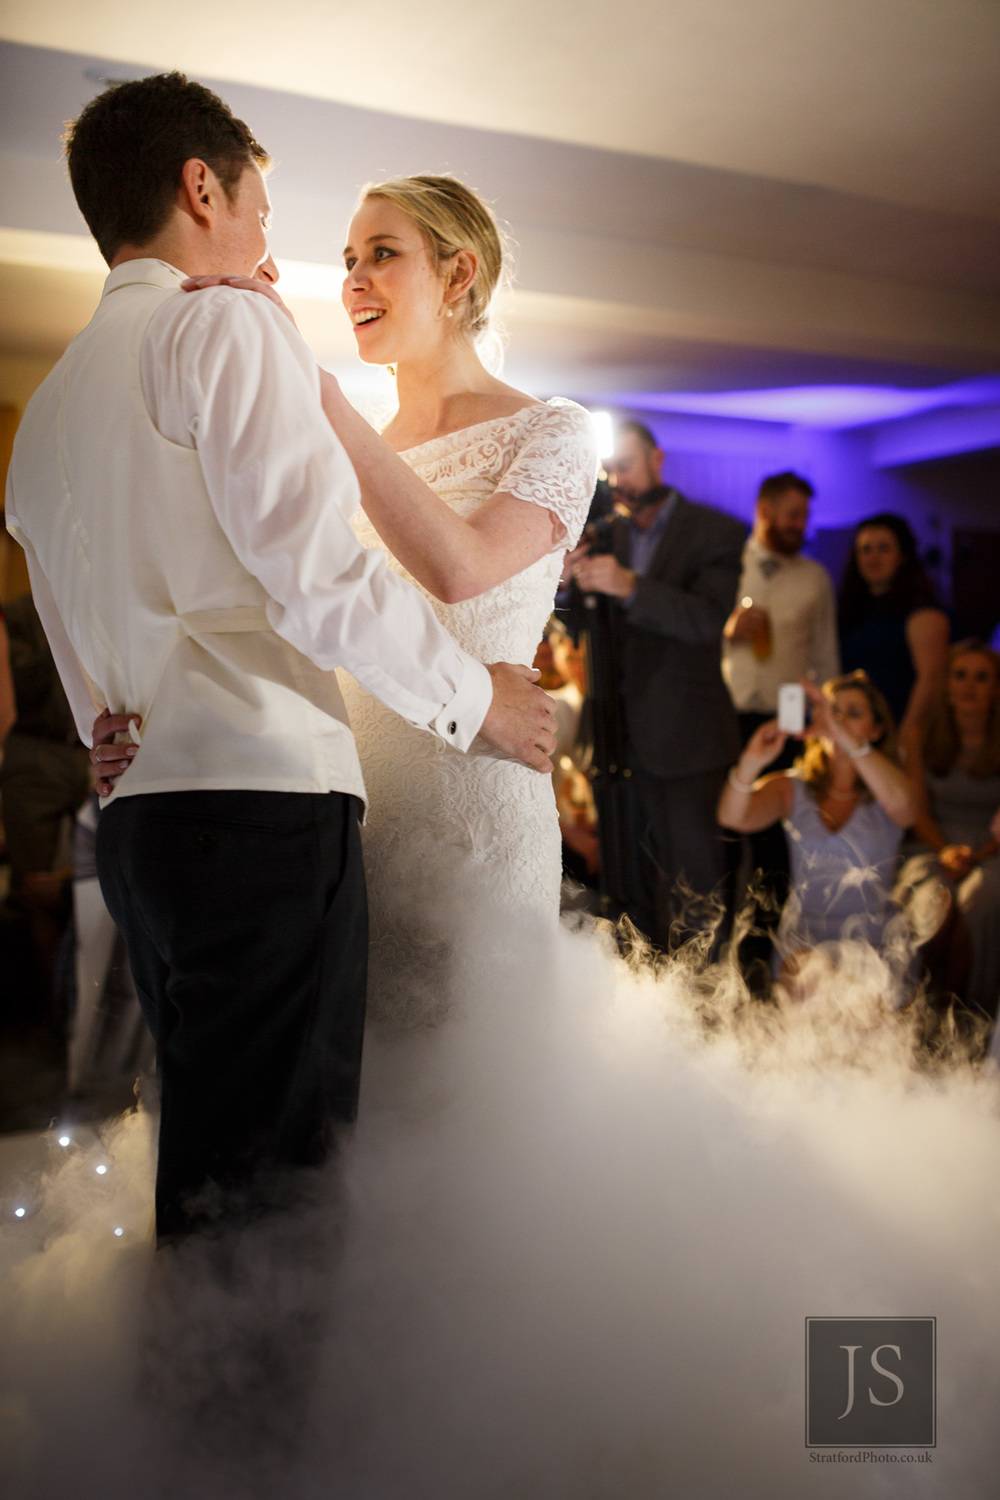 A bride and groom share their first dance in dry ice.jpg